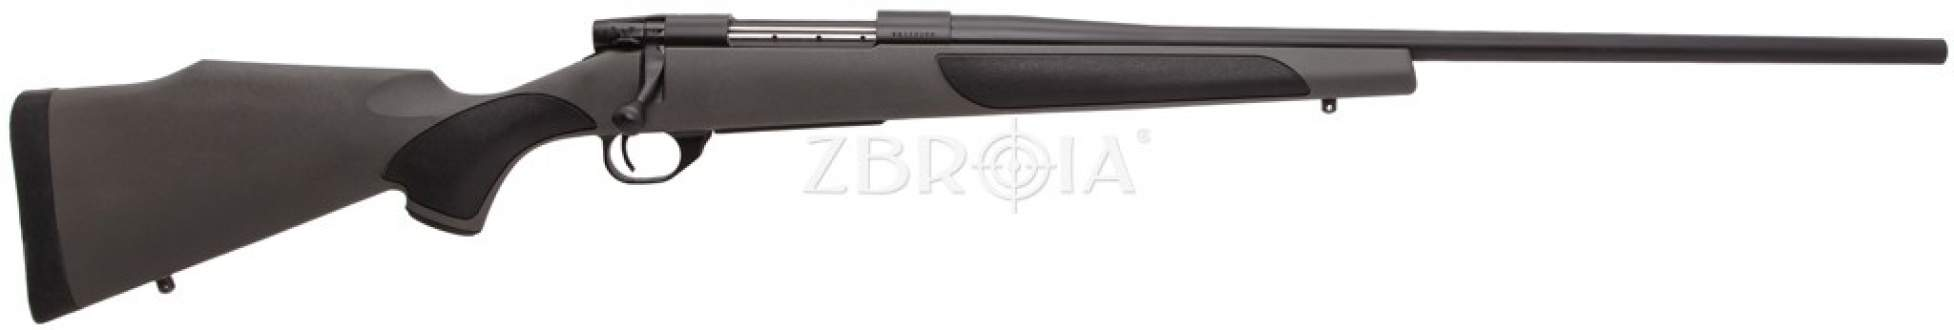 Карабин Weatherby Vanguard 2 Synthetic кал. 30-06